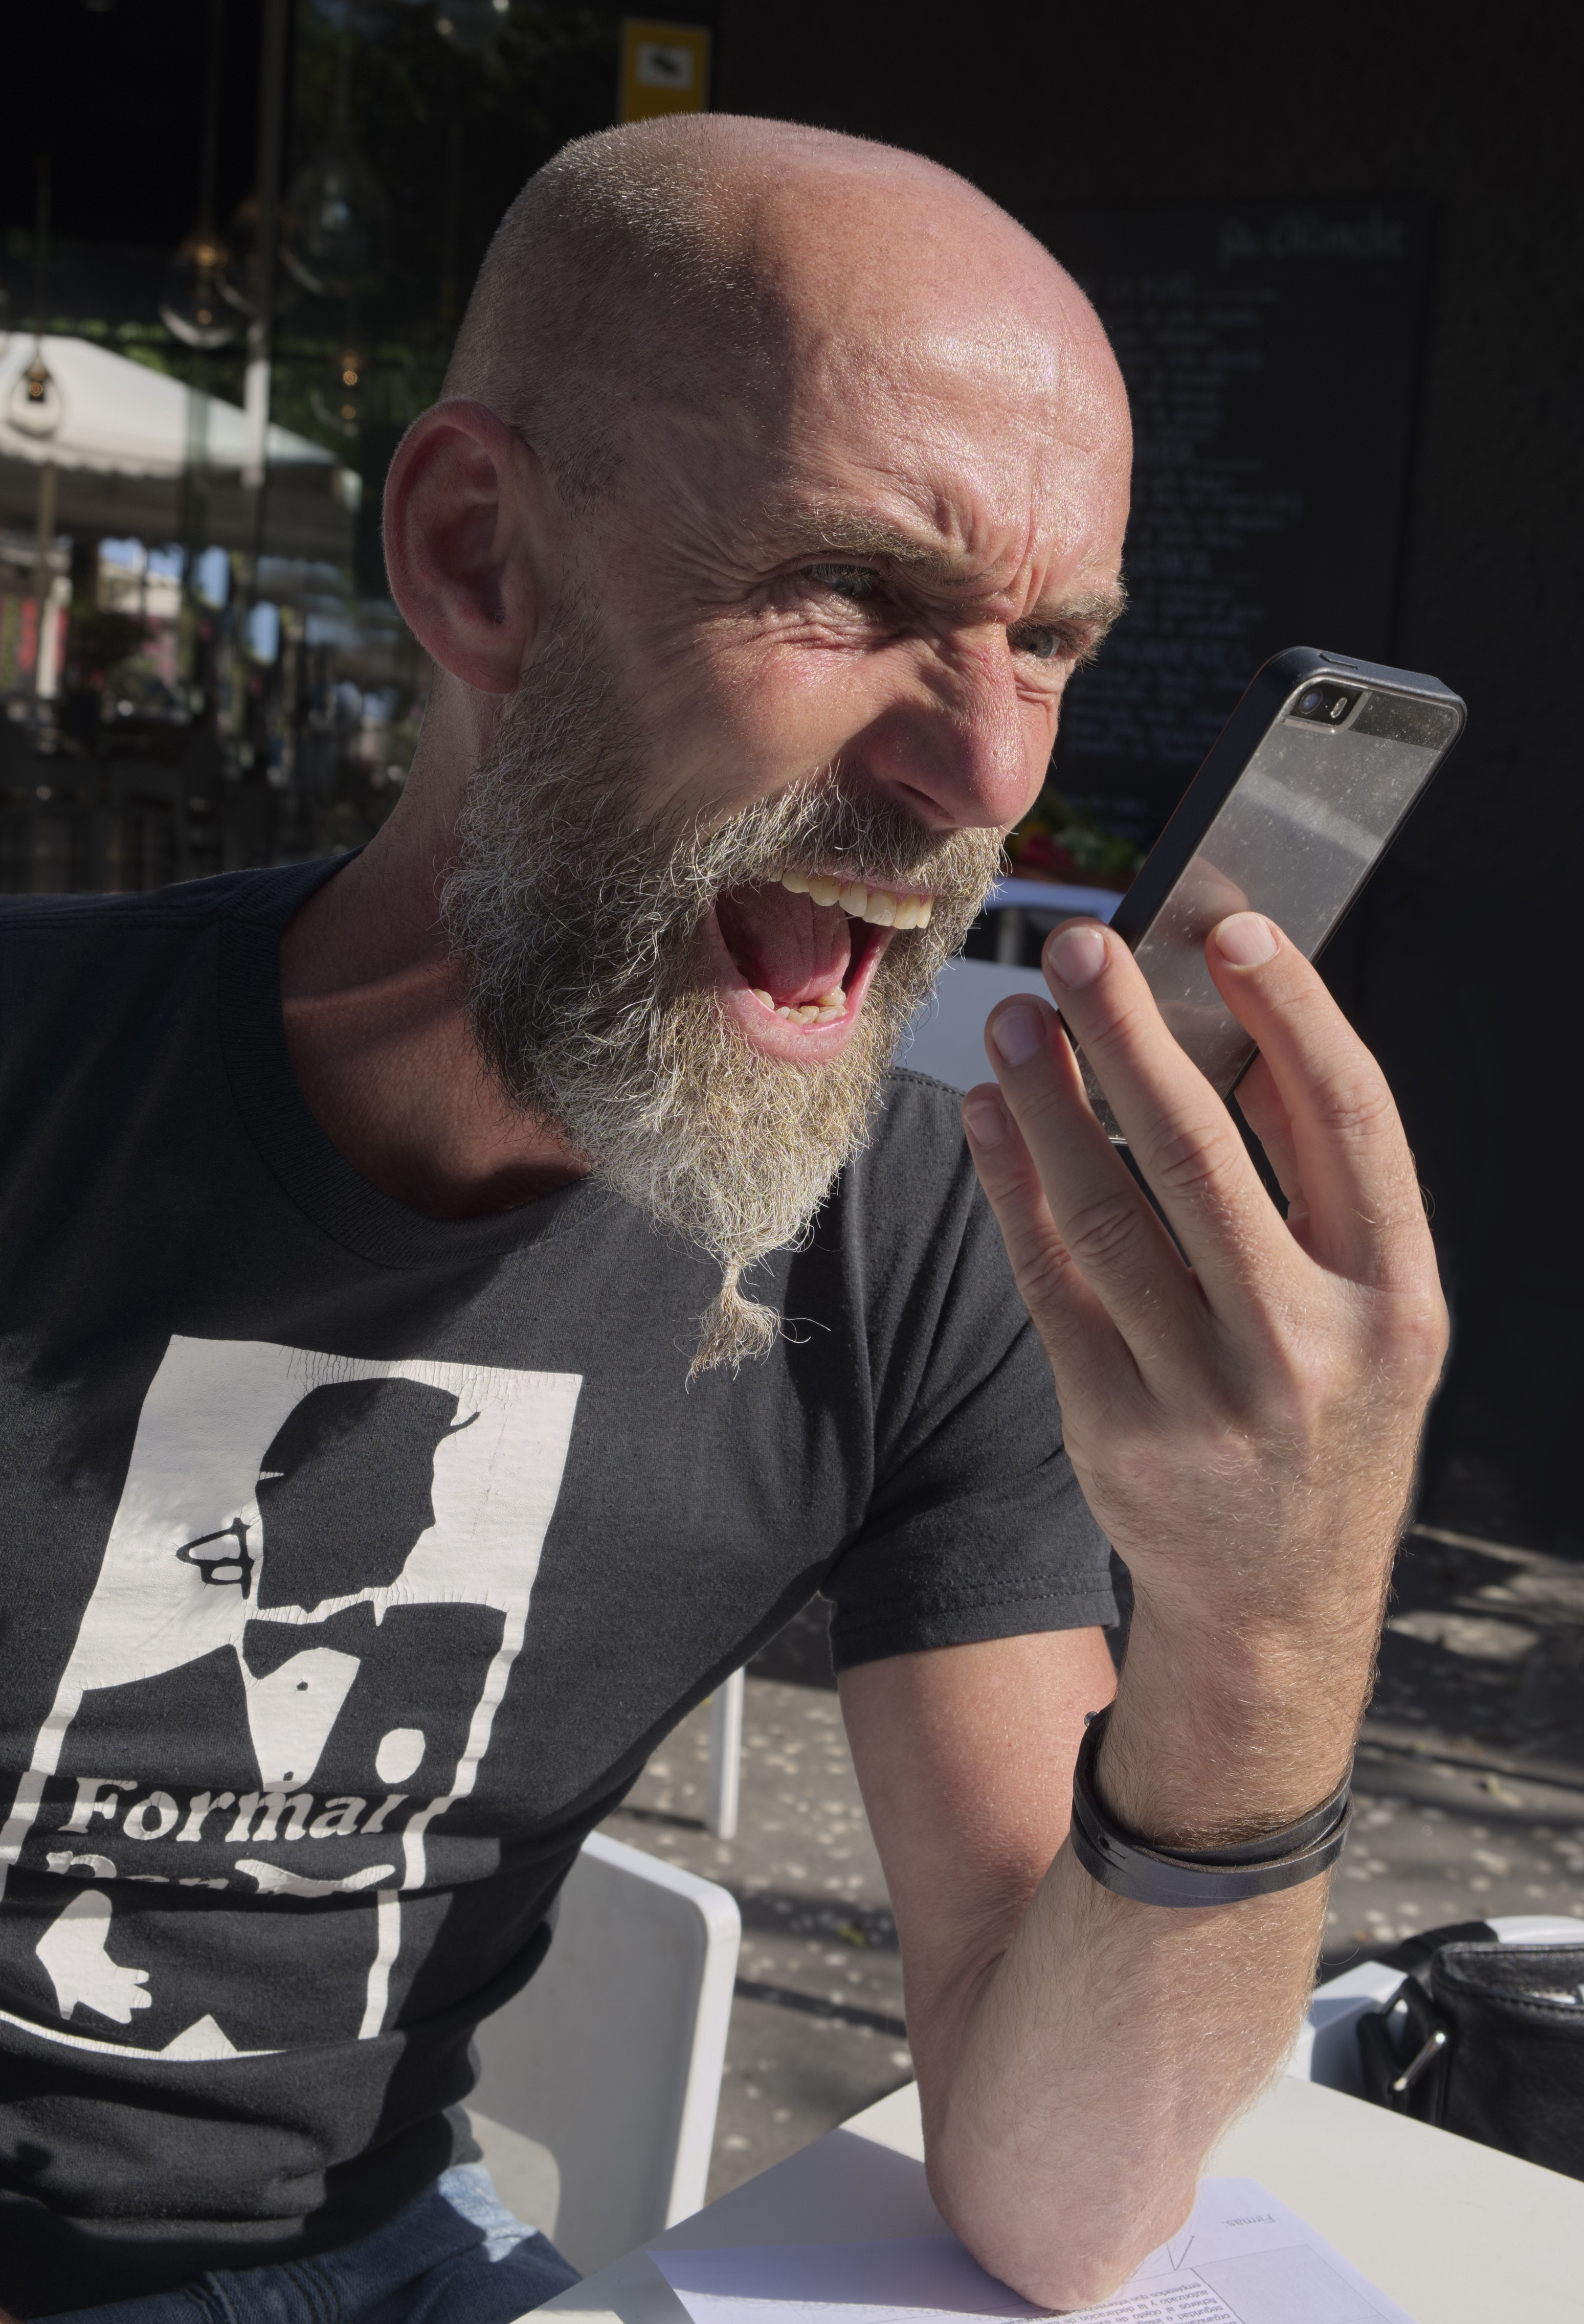 An angry looking bearded man shouts into his phone